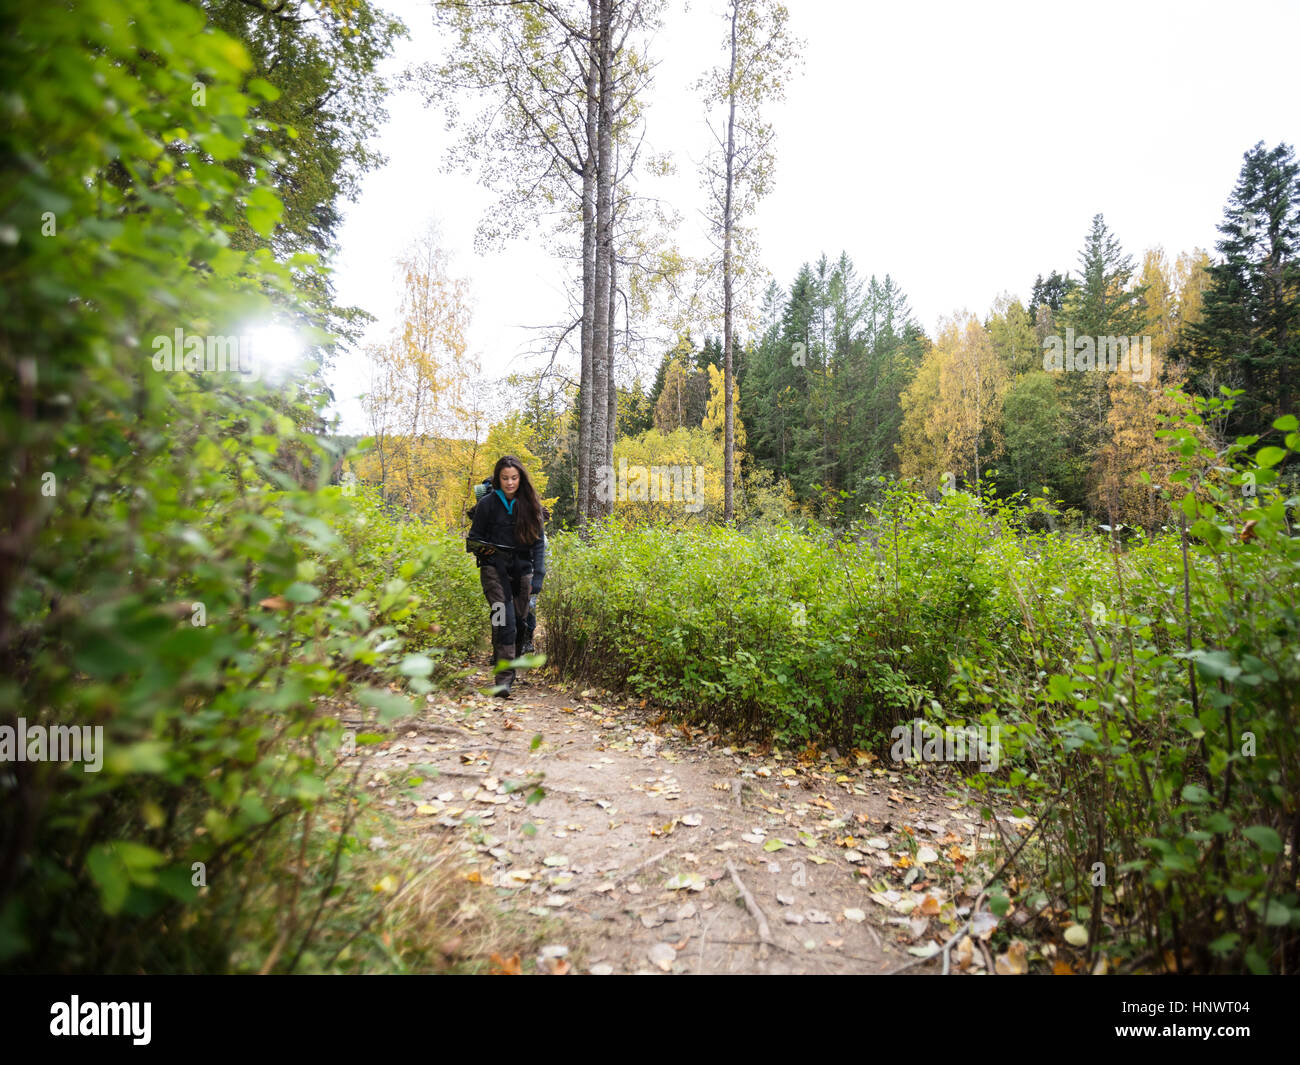 Young Female Hiker Walking On Forest Trail - Stock Image